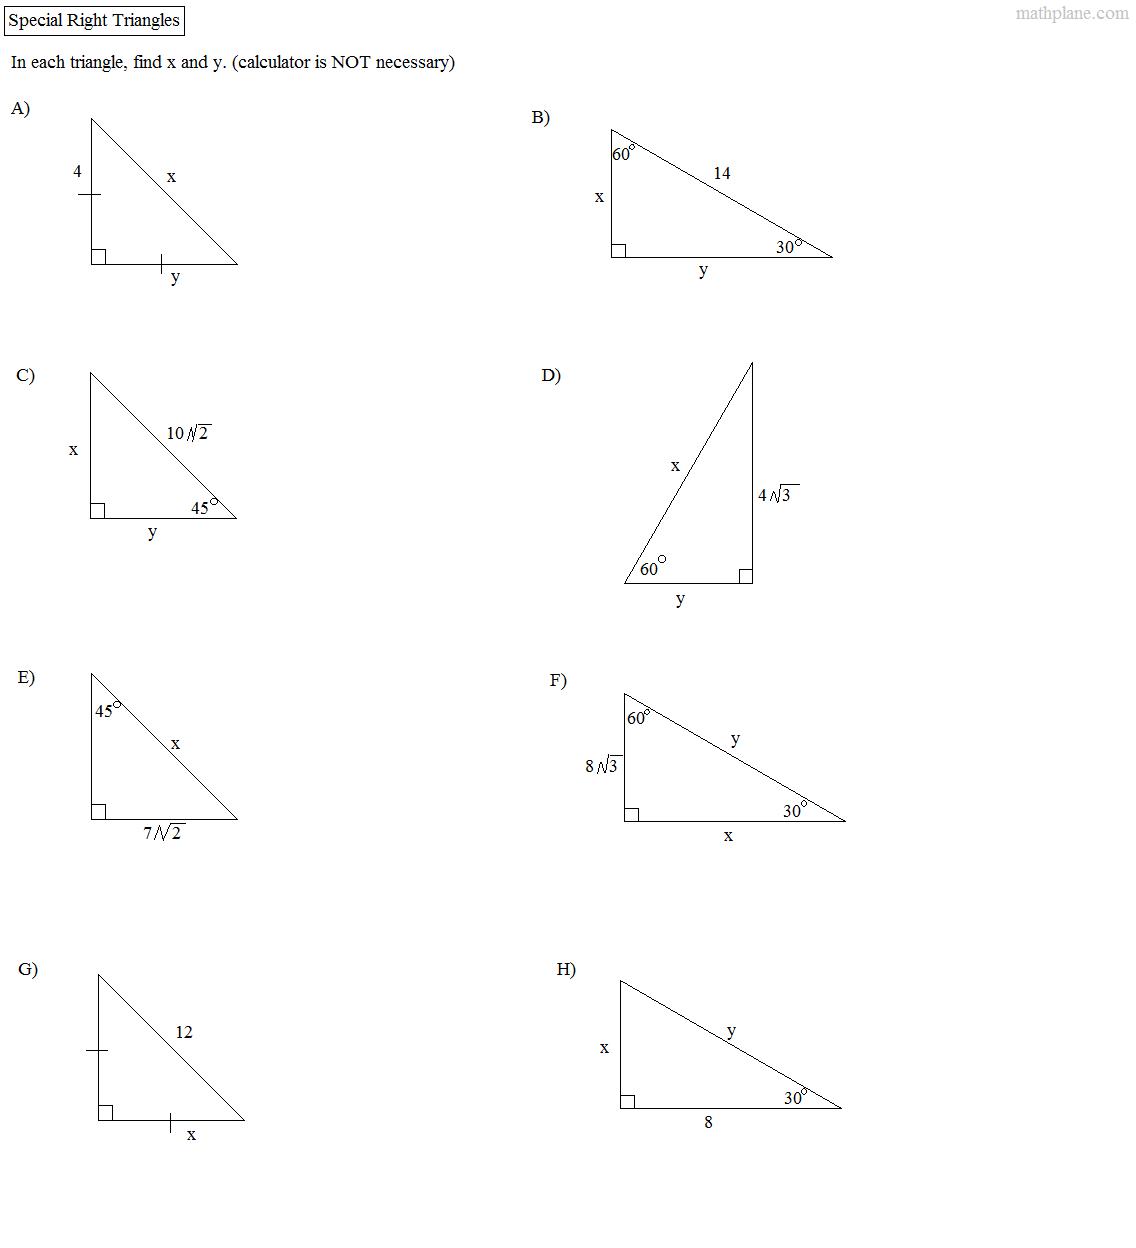 worksheet. Special Right Triangles 30 60 90 Worksheet. Grass Fedjp ...